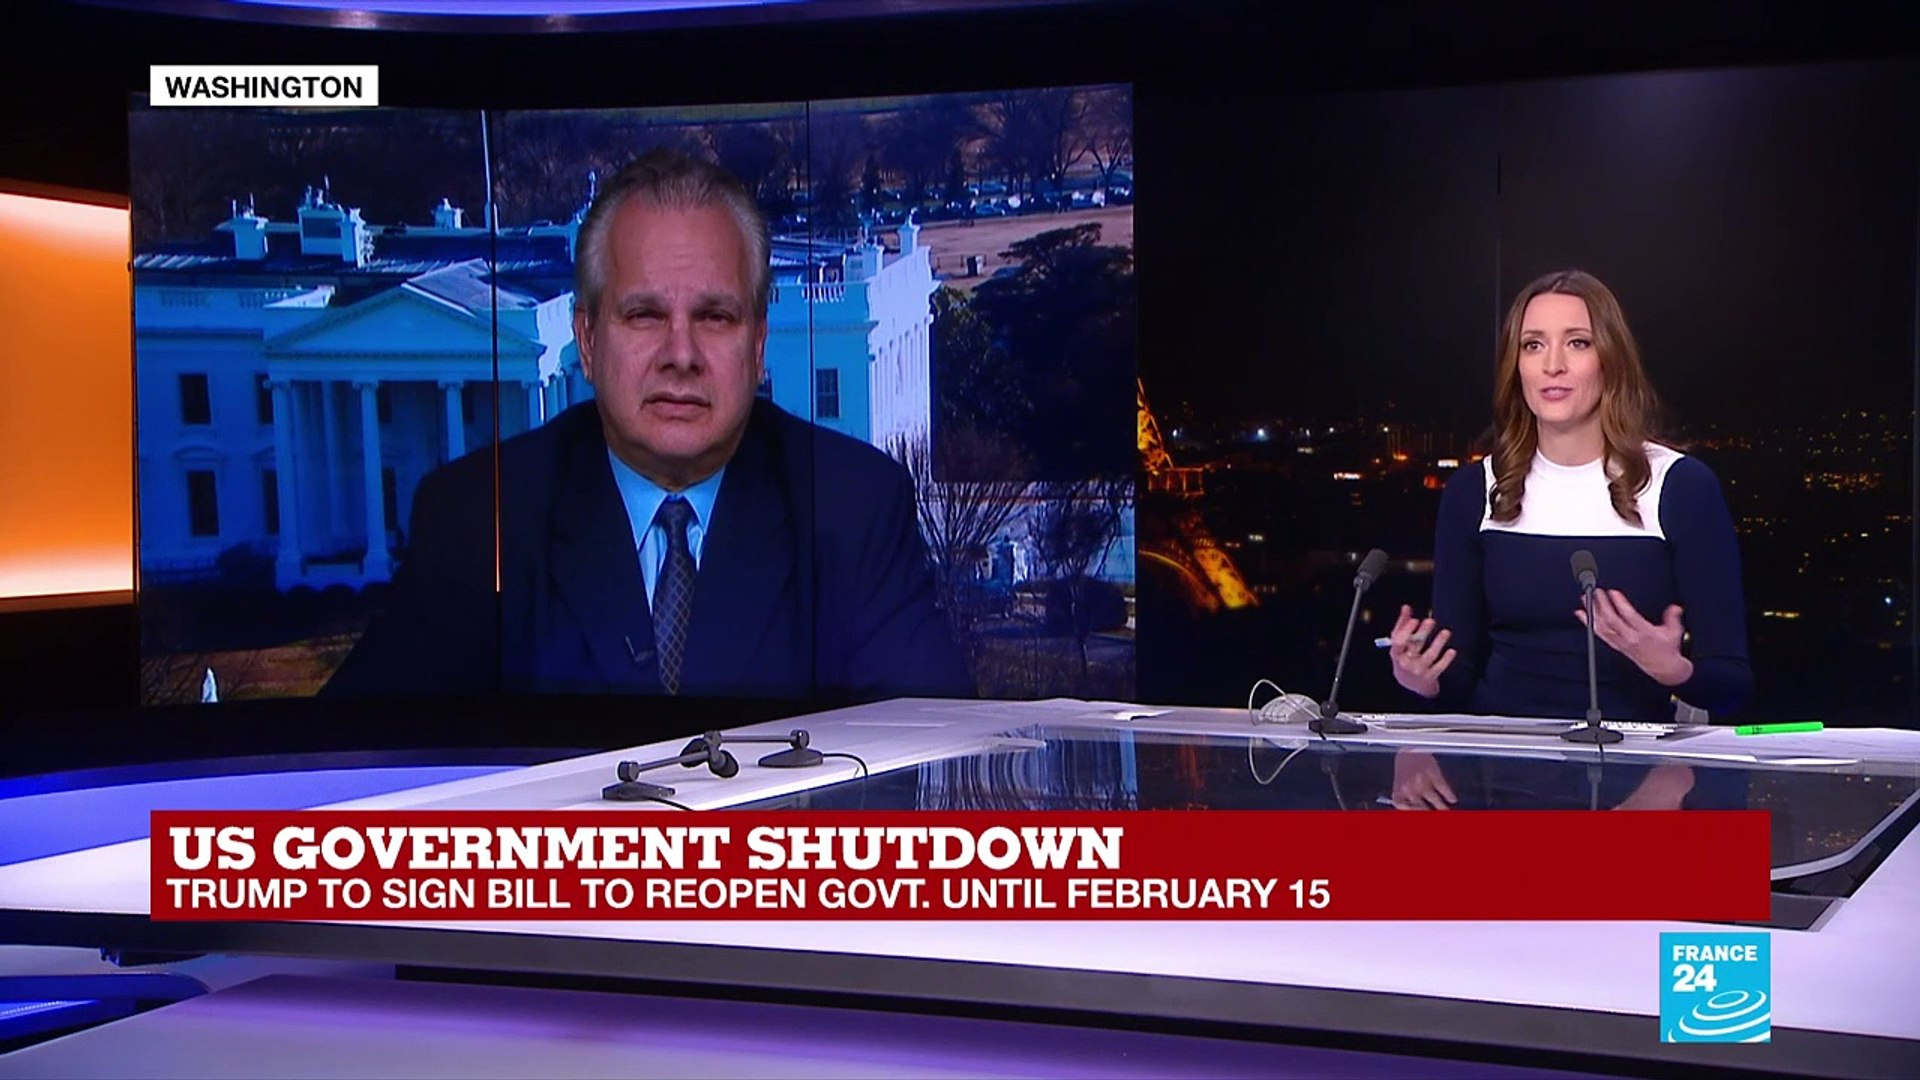 US Gouvernement shutdown: Trump to sign bill to reopen govt. until February 15